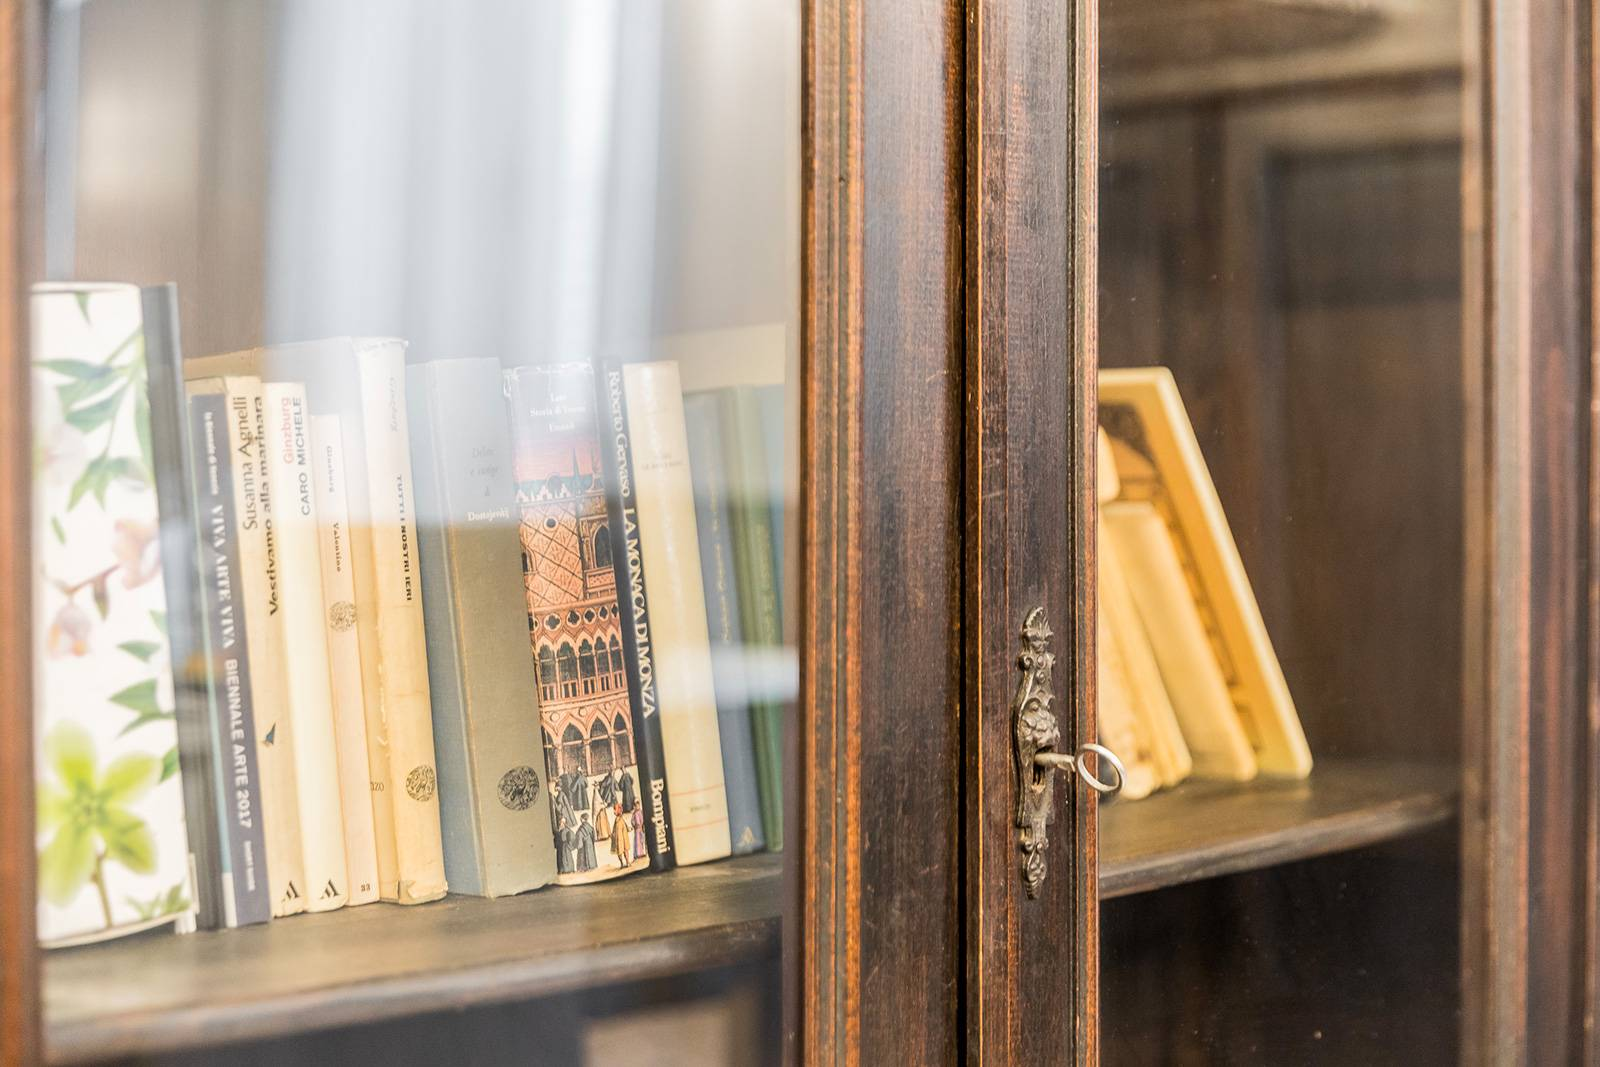 there are plenty of books in the antique library